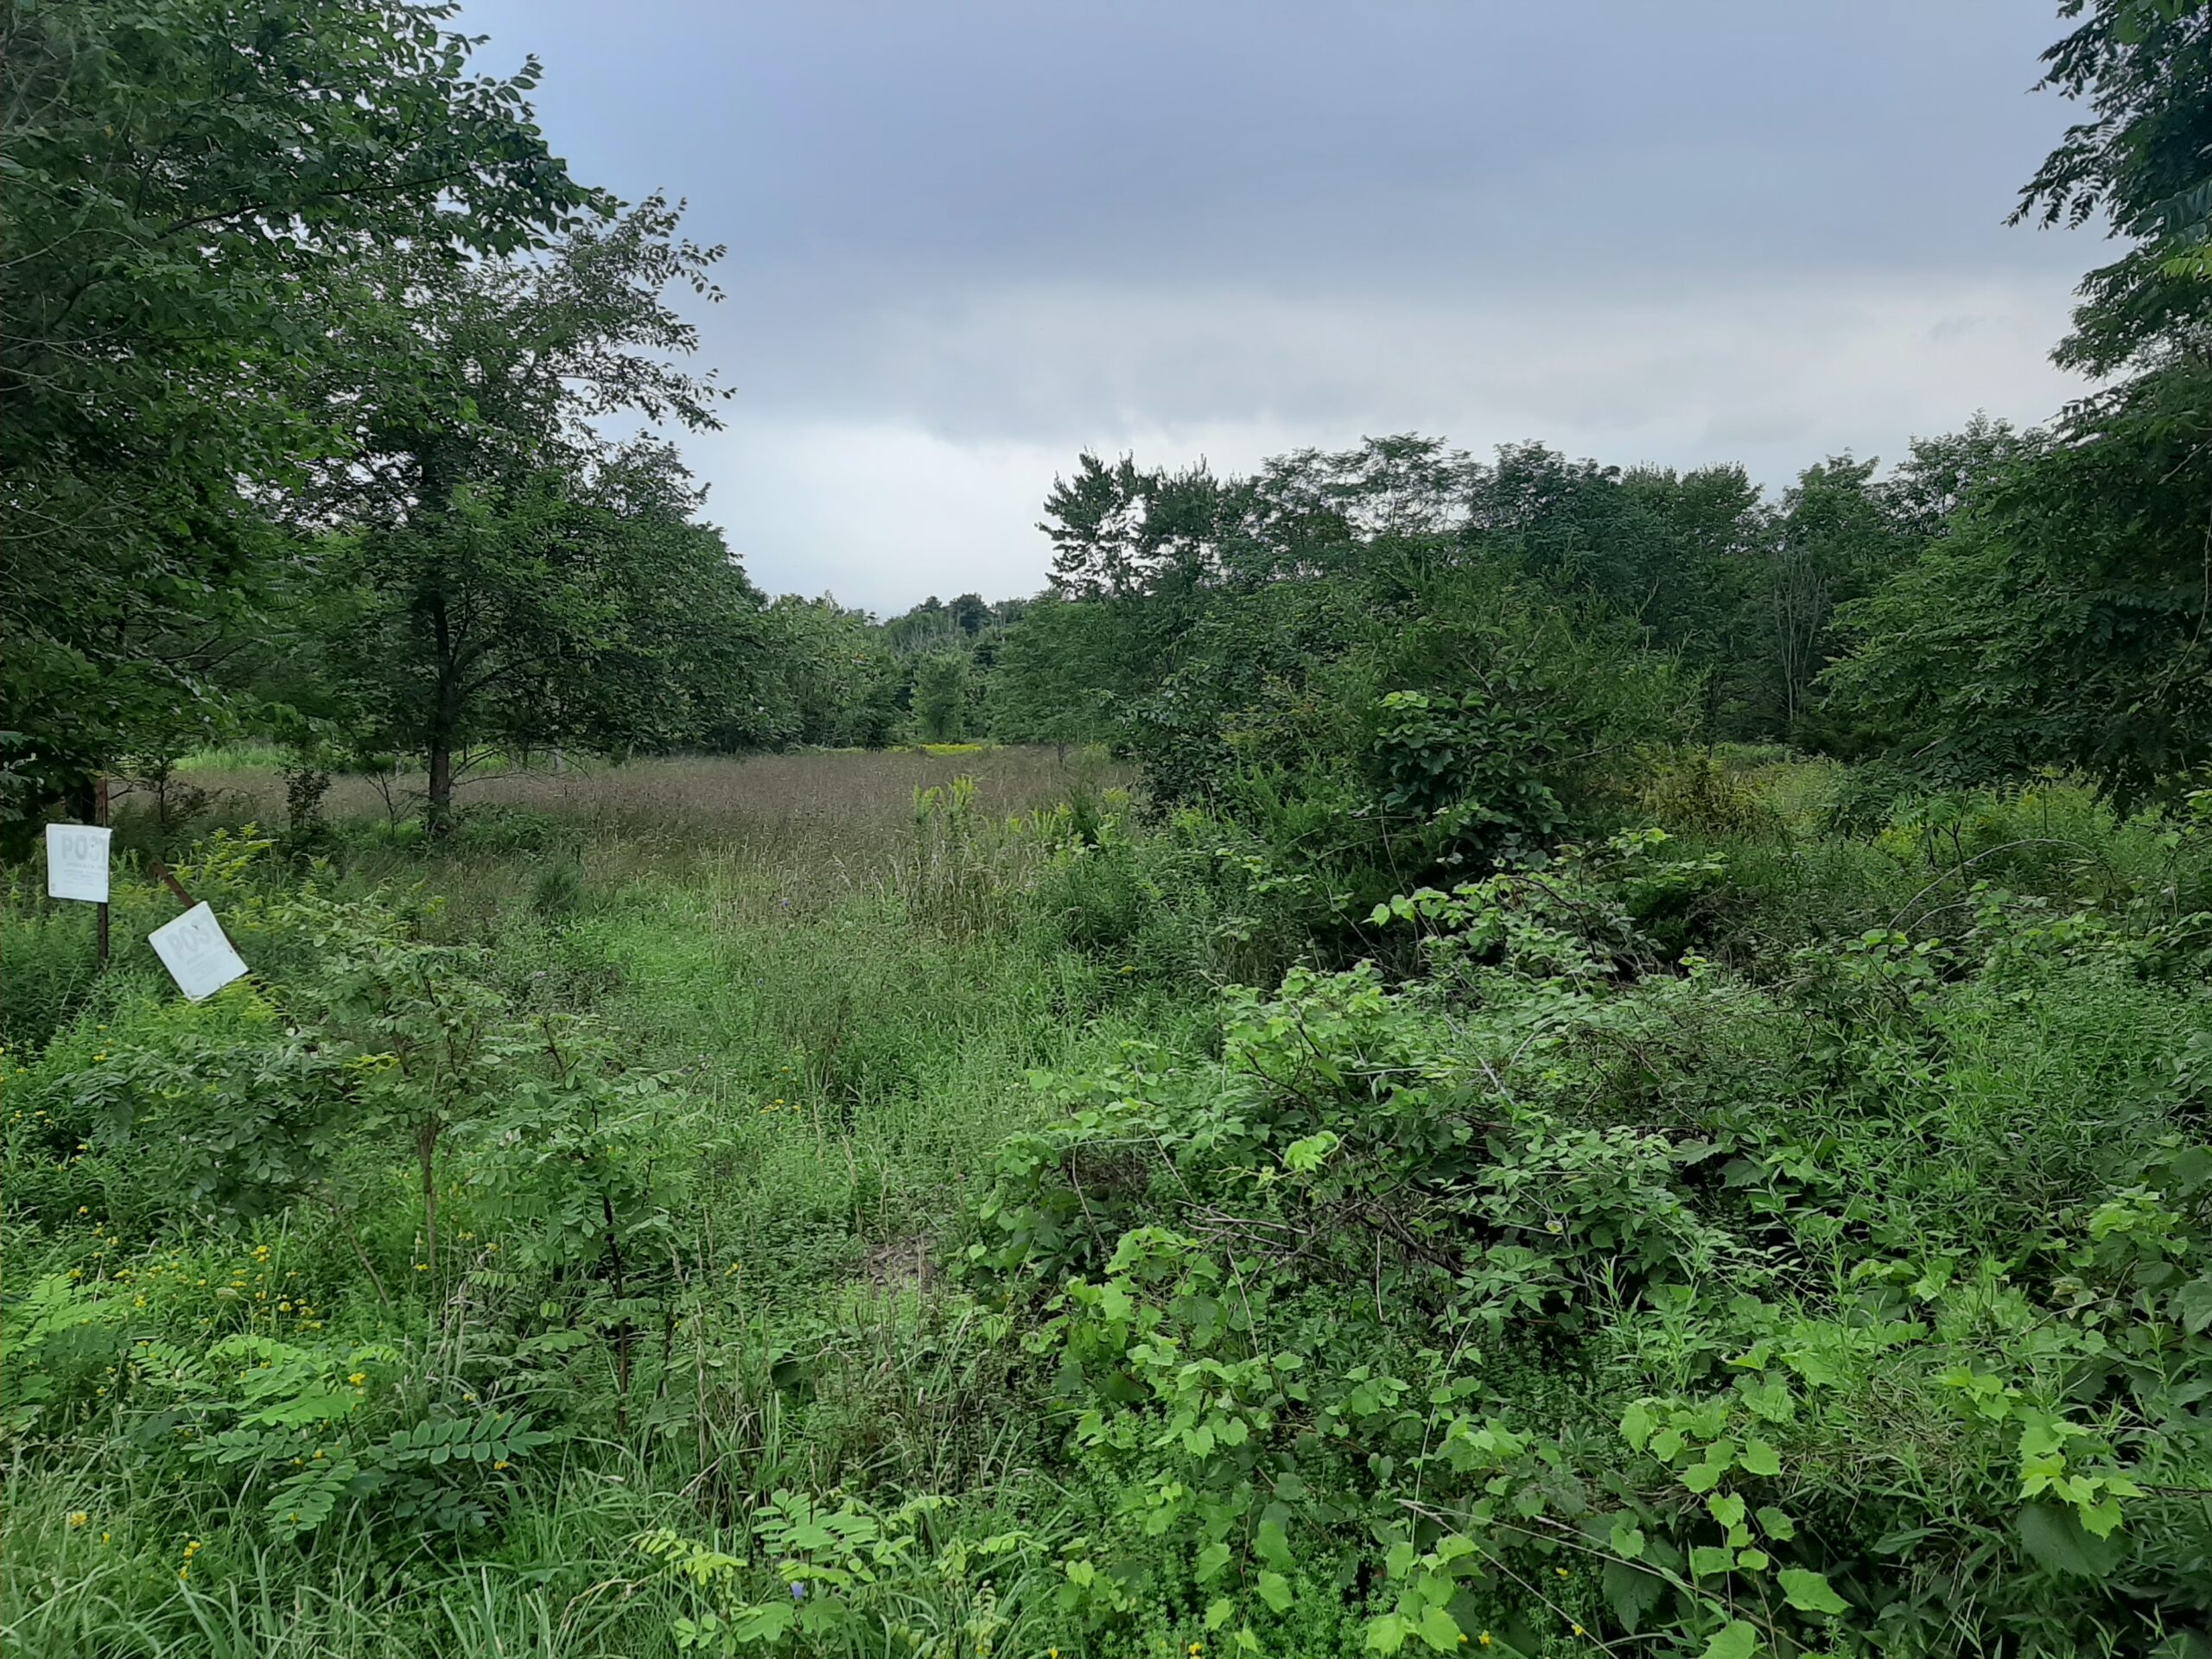 Cairo 15 Acres Land Country Road 4 lot Subdivision